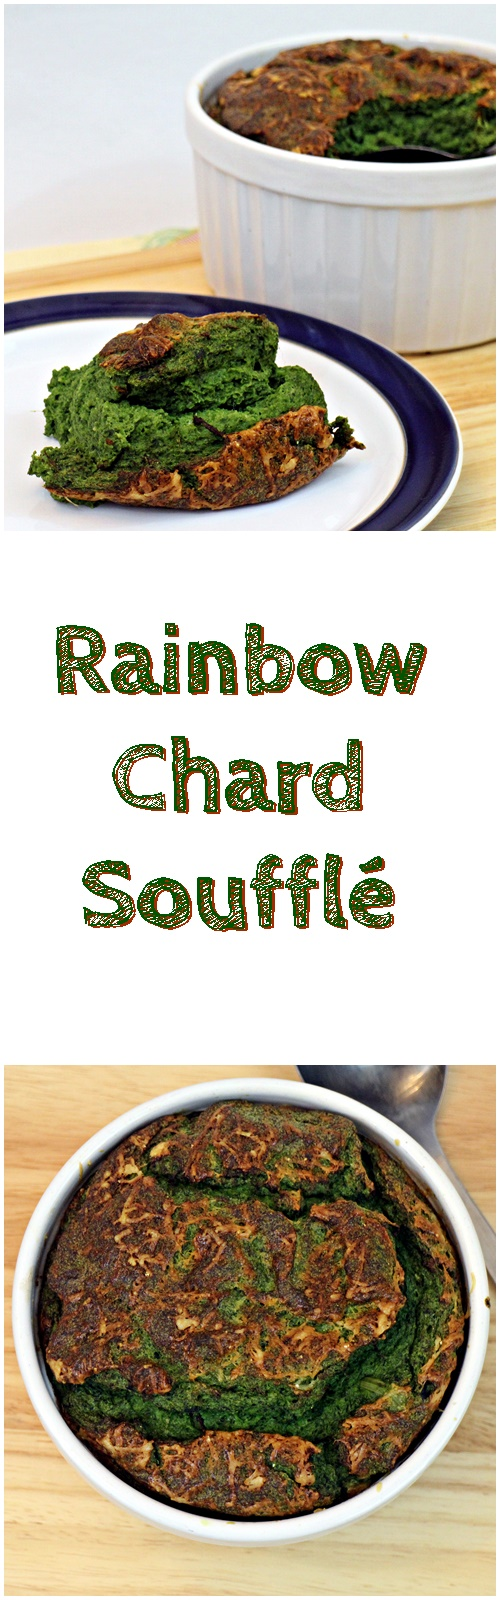 Rainbow Chard Soufflé, cheesy and delicious! Fab Food 4 All